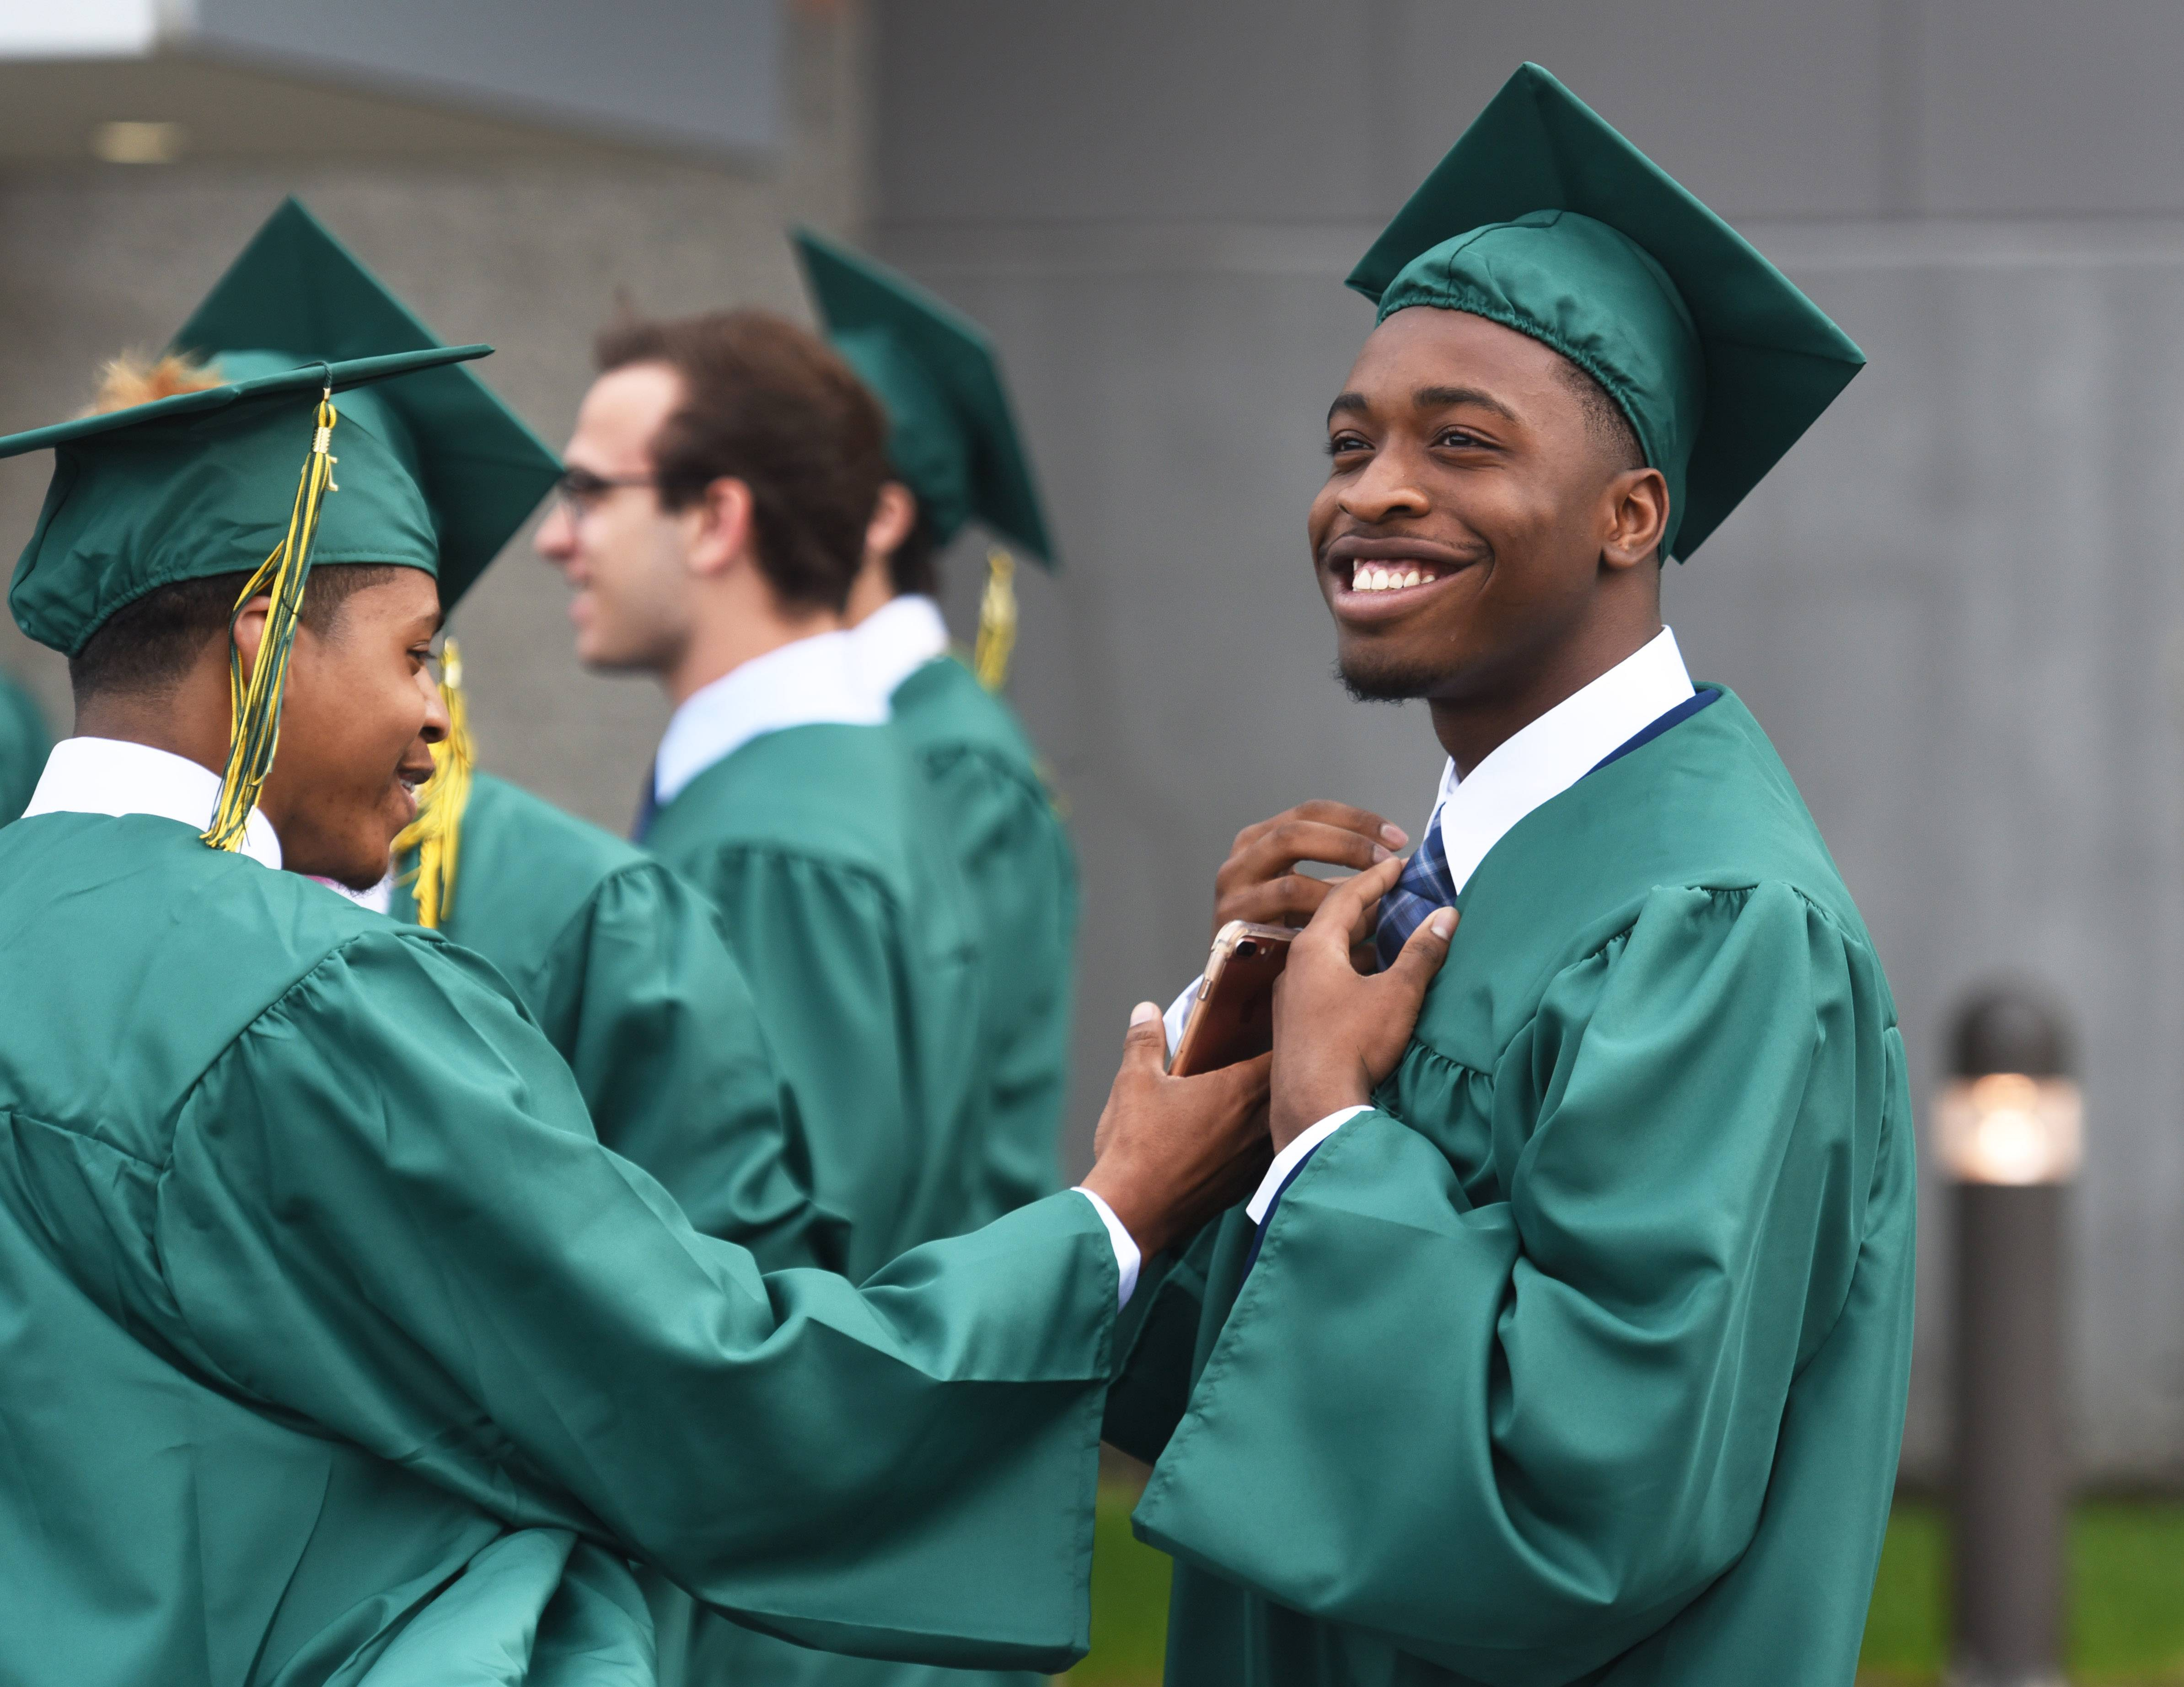 Fremd High School student Anthony Garner, right, is all smiles as schoolmate Brandon Nutall, left, checks out his tie before the start of Monday's graduation ceremony at the Sears Centre in Hoffman Estates.